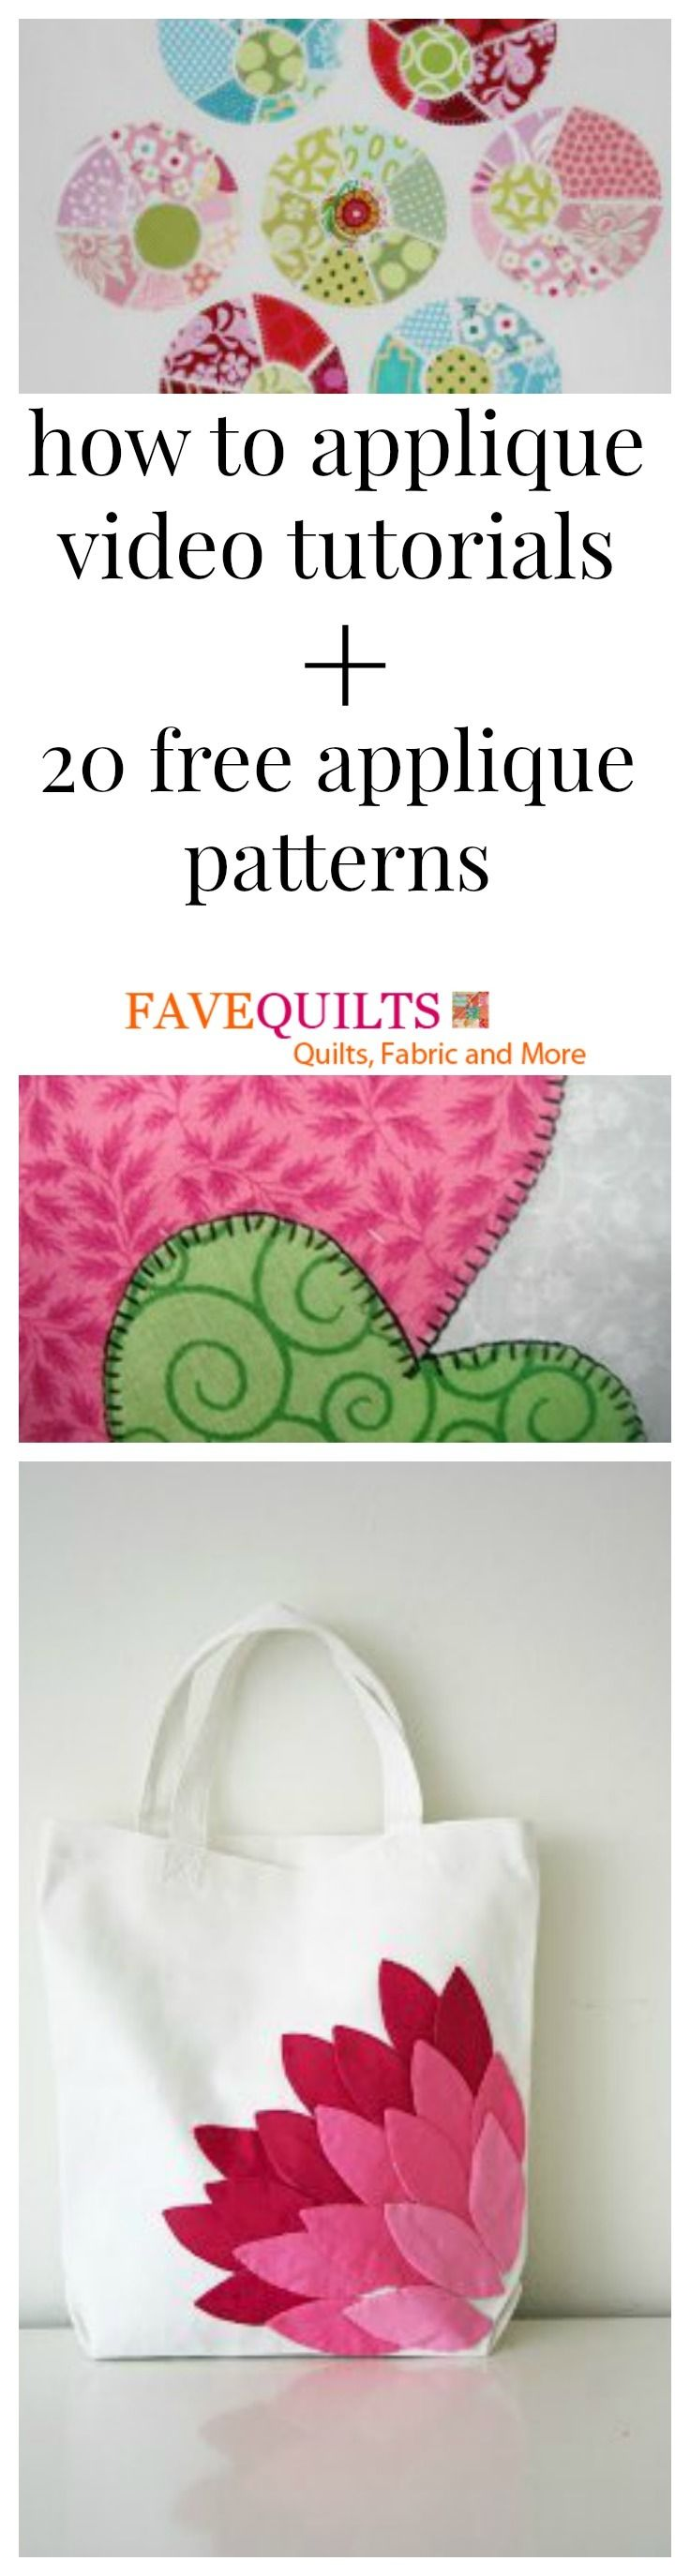 How to Applique Videos + 20 Free Applique Designs | FaveQuilts.com